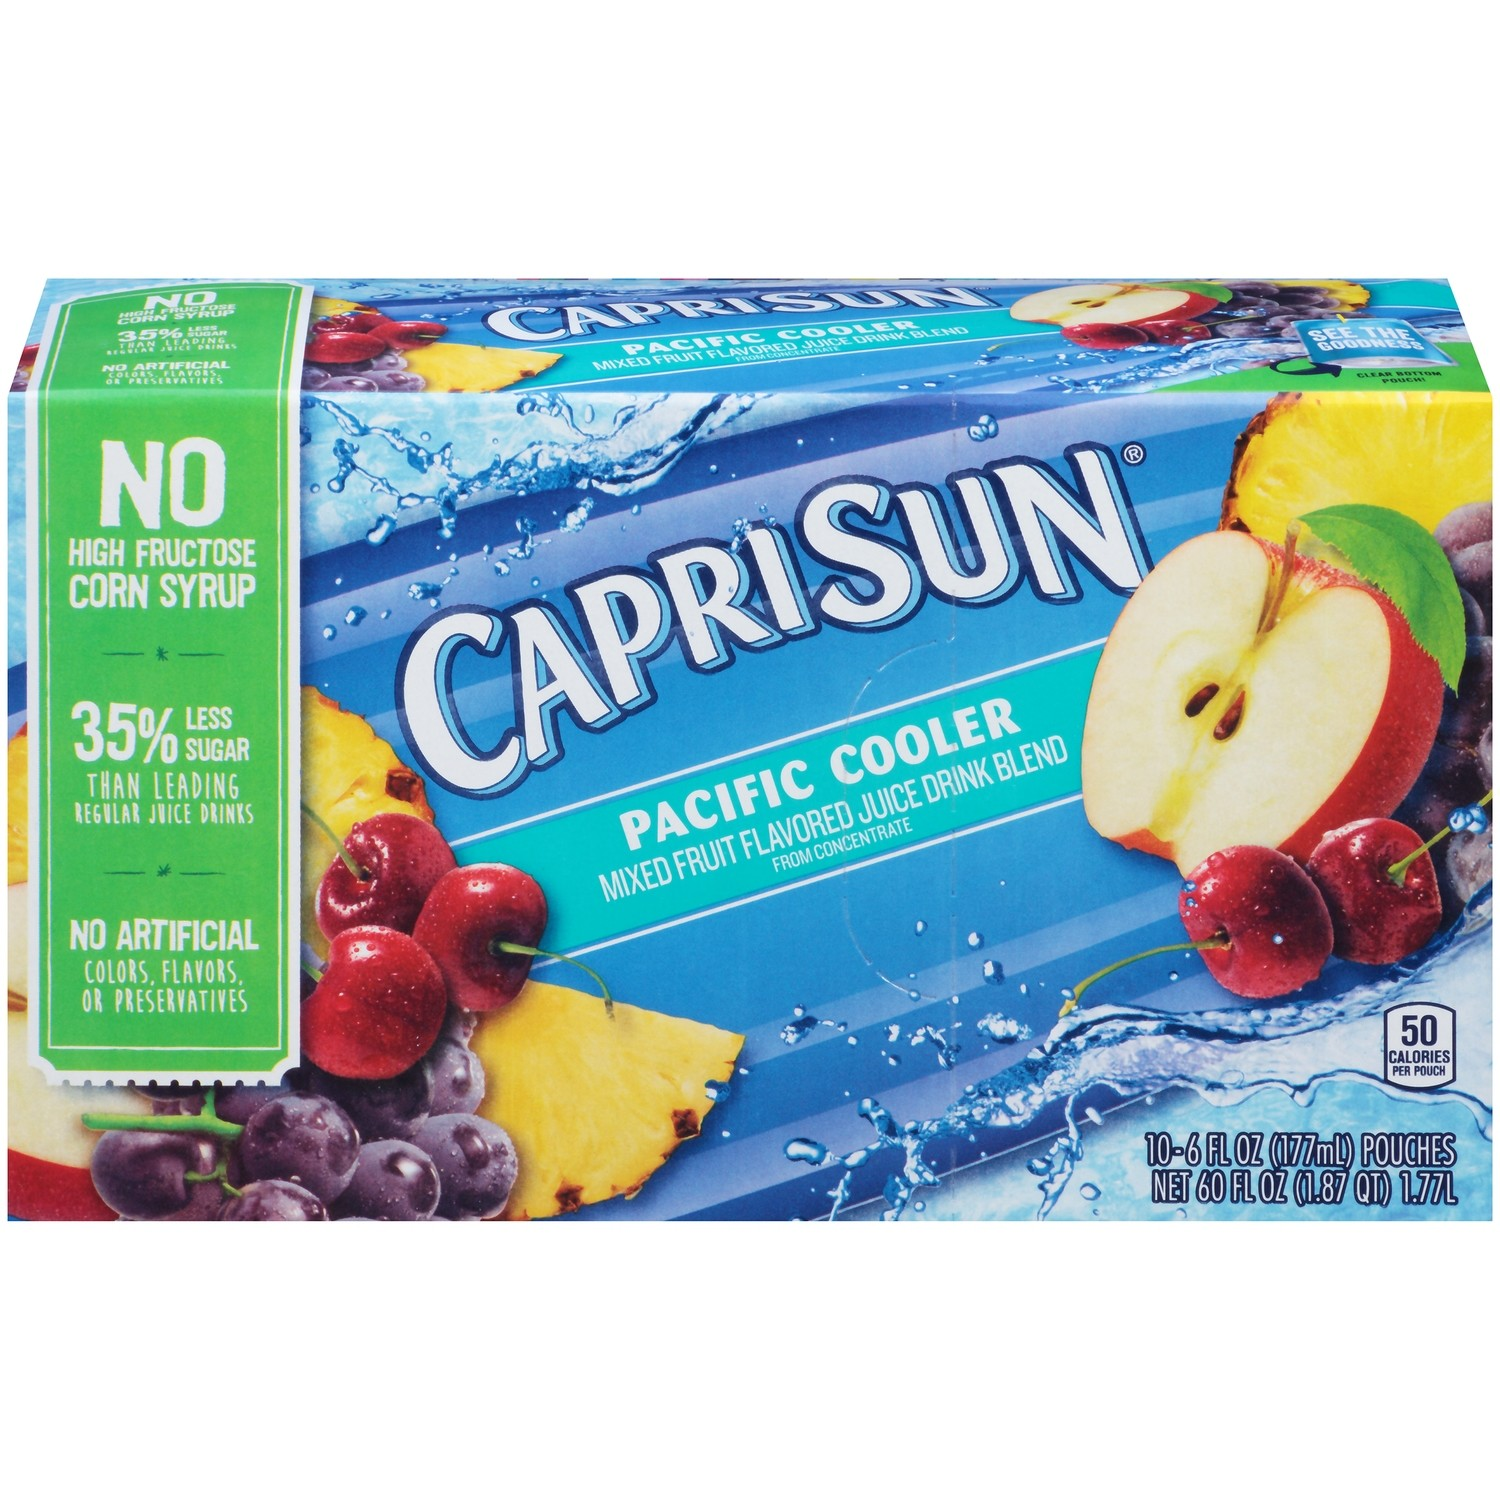 Juice Drink, Capri Sun® Pacific Cooler, Single 6 oz Packet